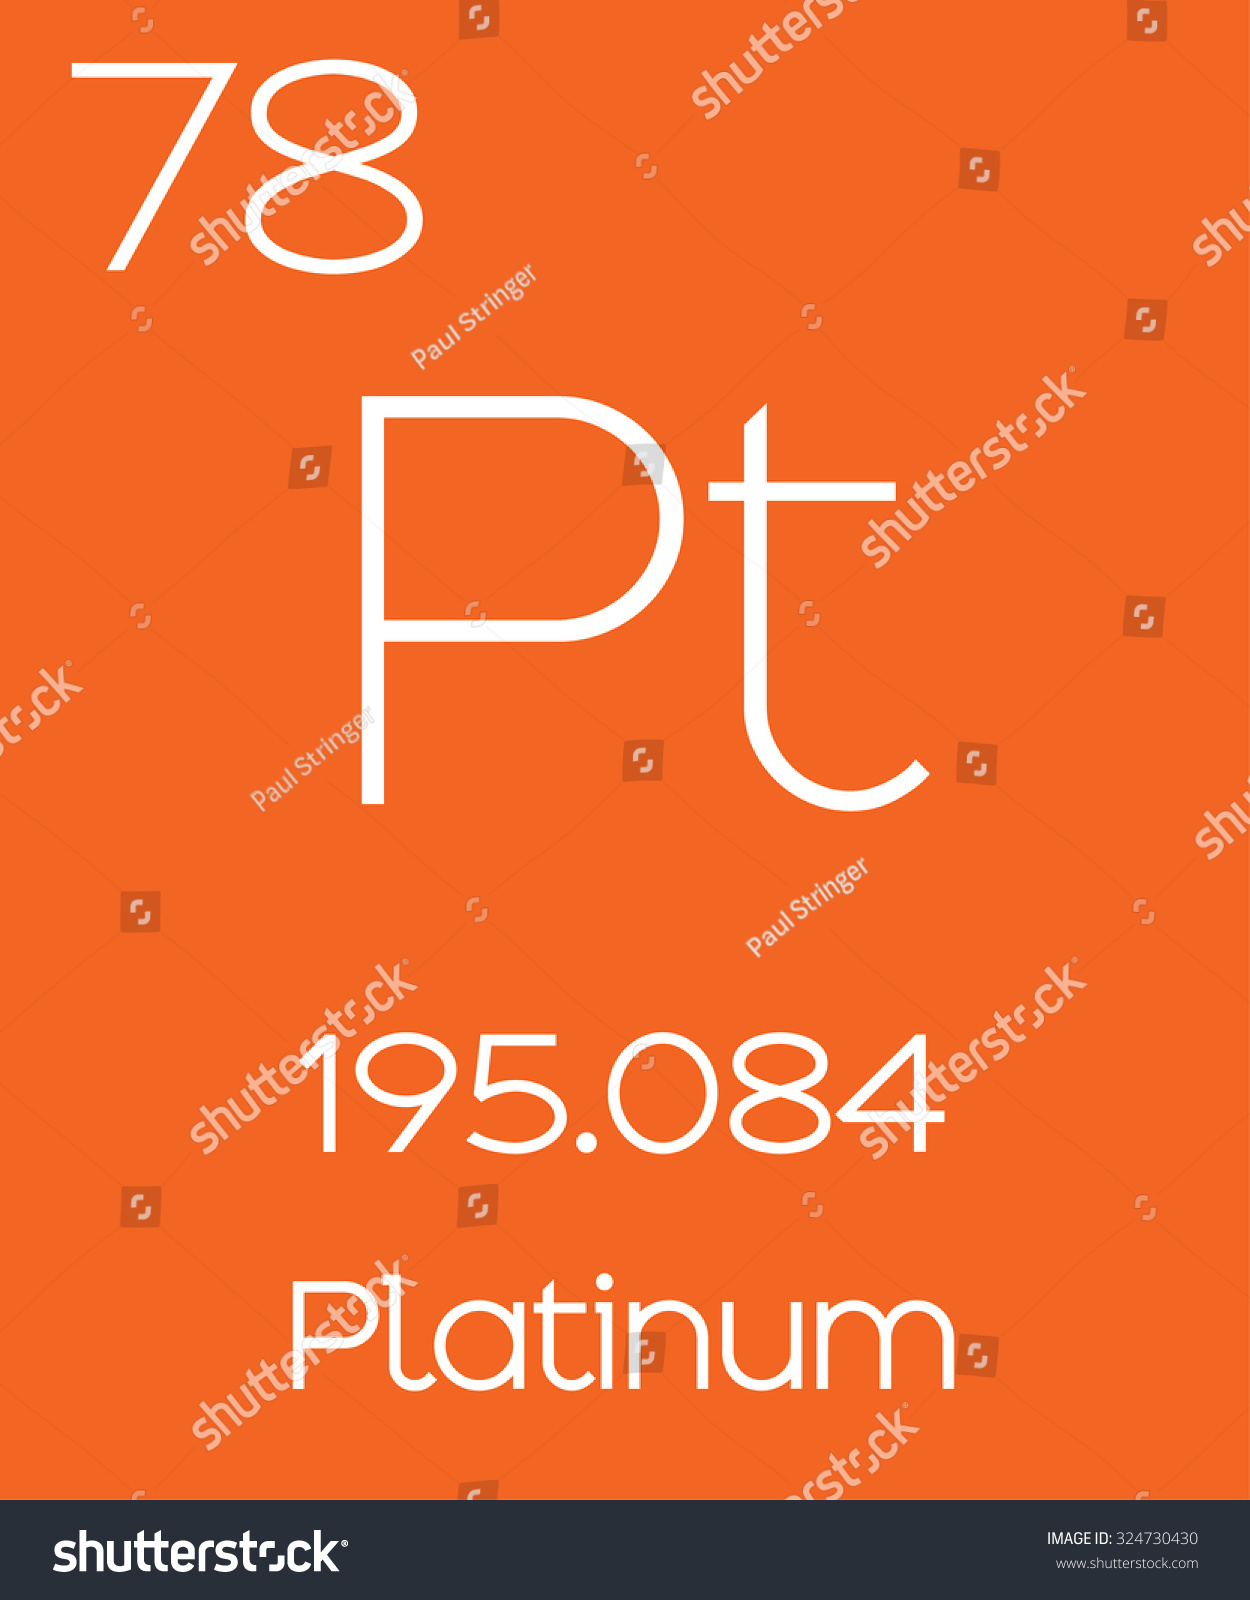 platinum of illustration render design protons stock image element d